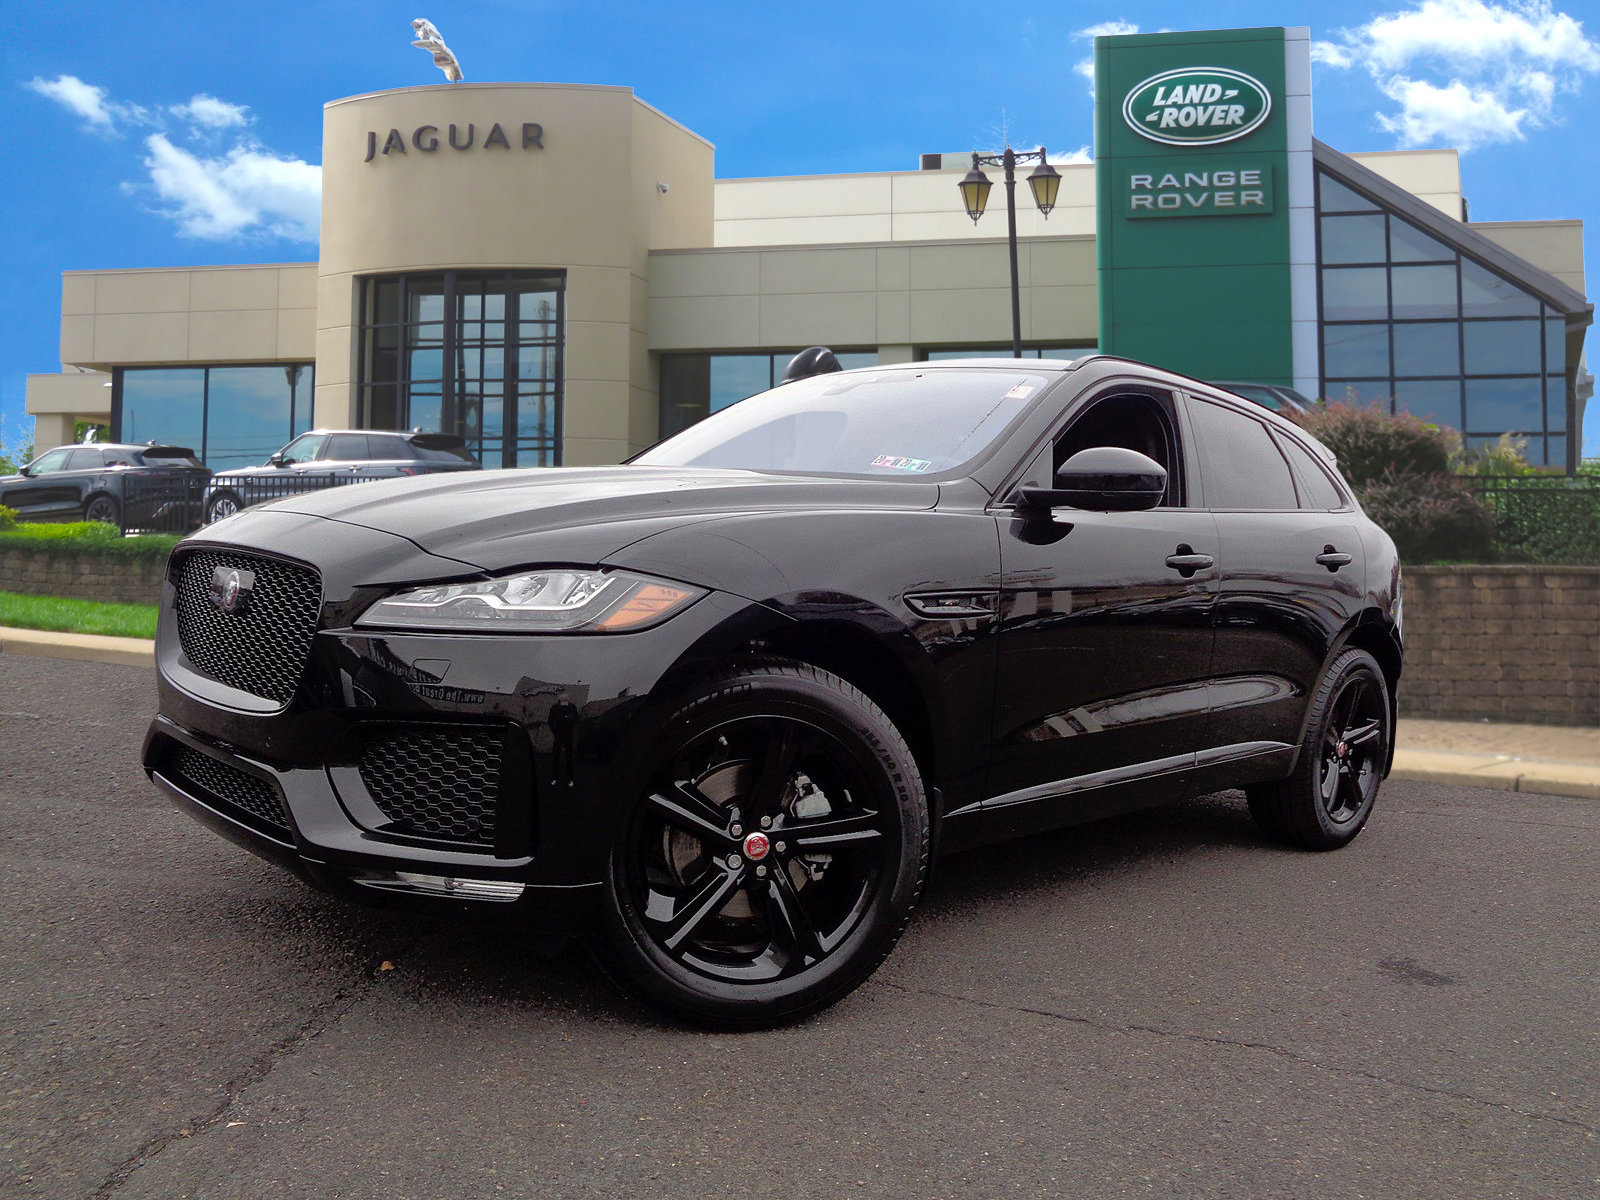 Certified Pre-Owned 2020 Jaguar F-PACE 25t Checkered Flag Limited Edition